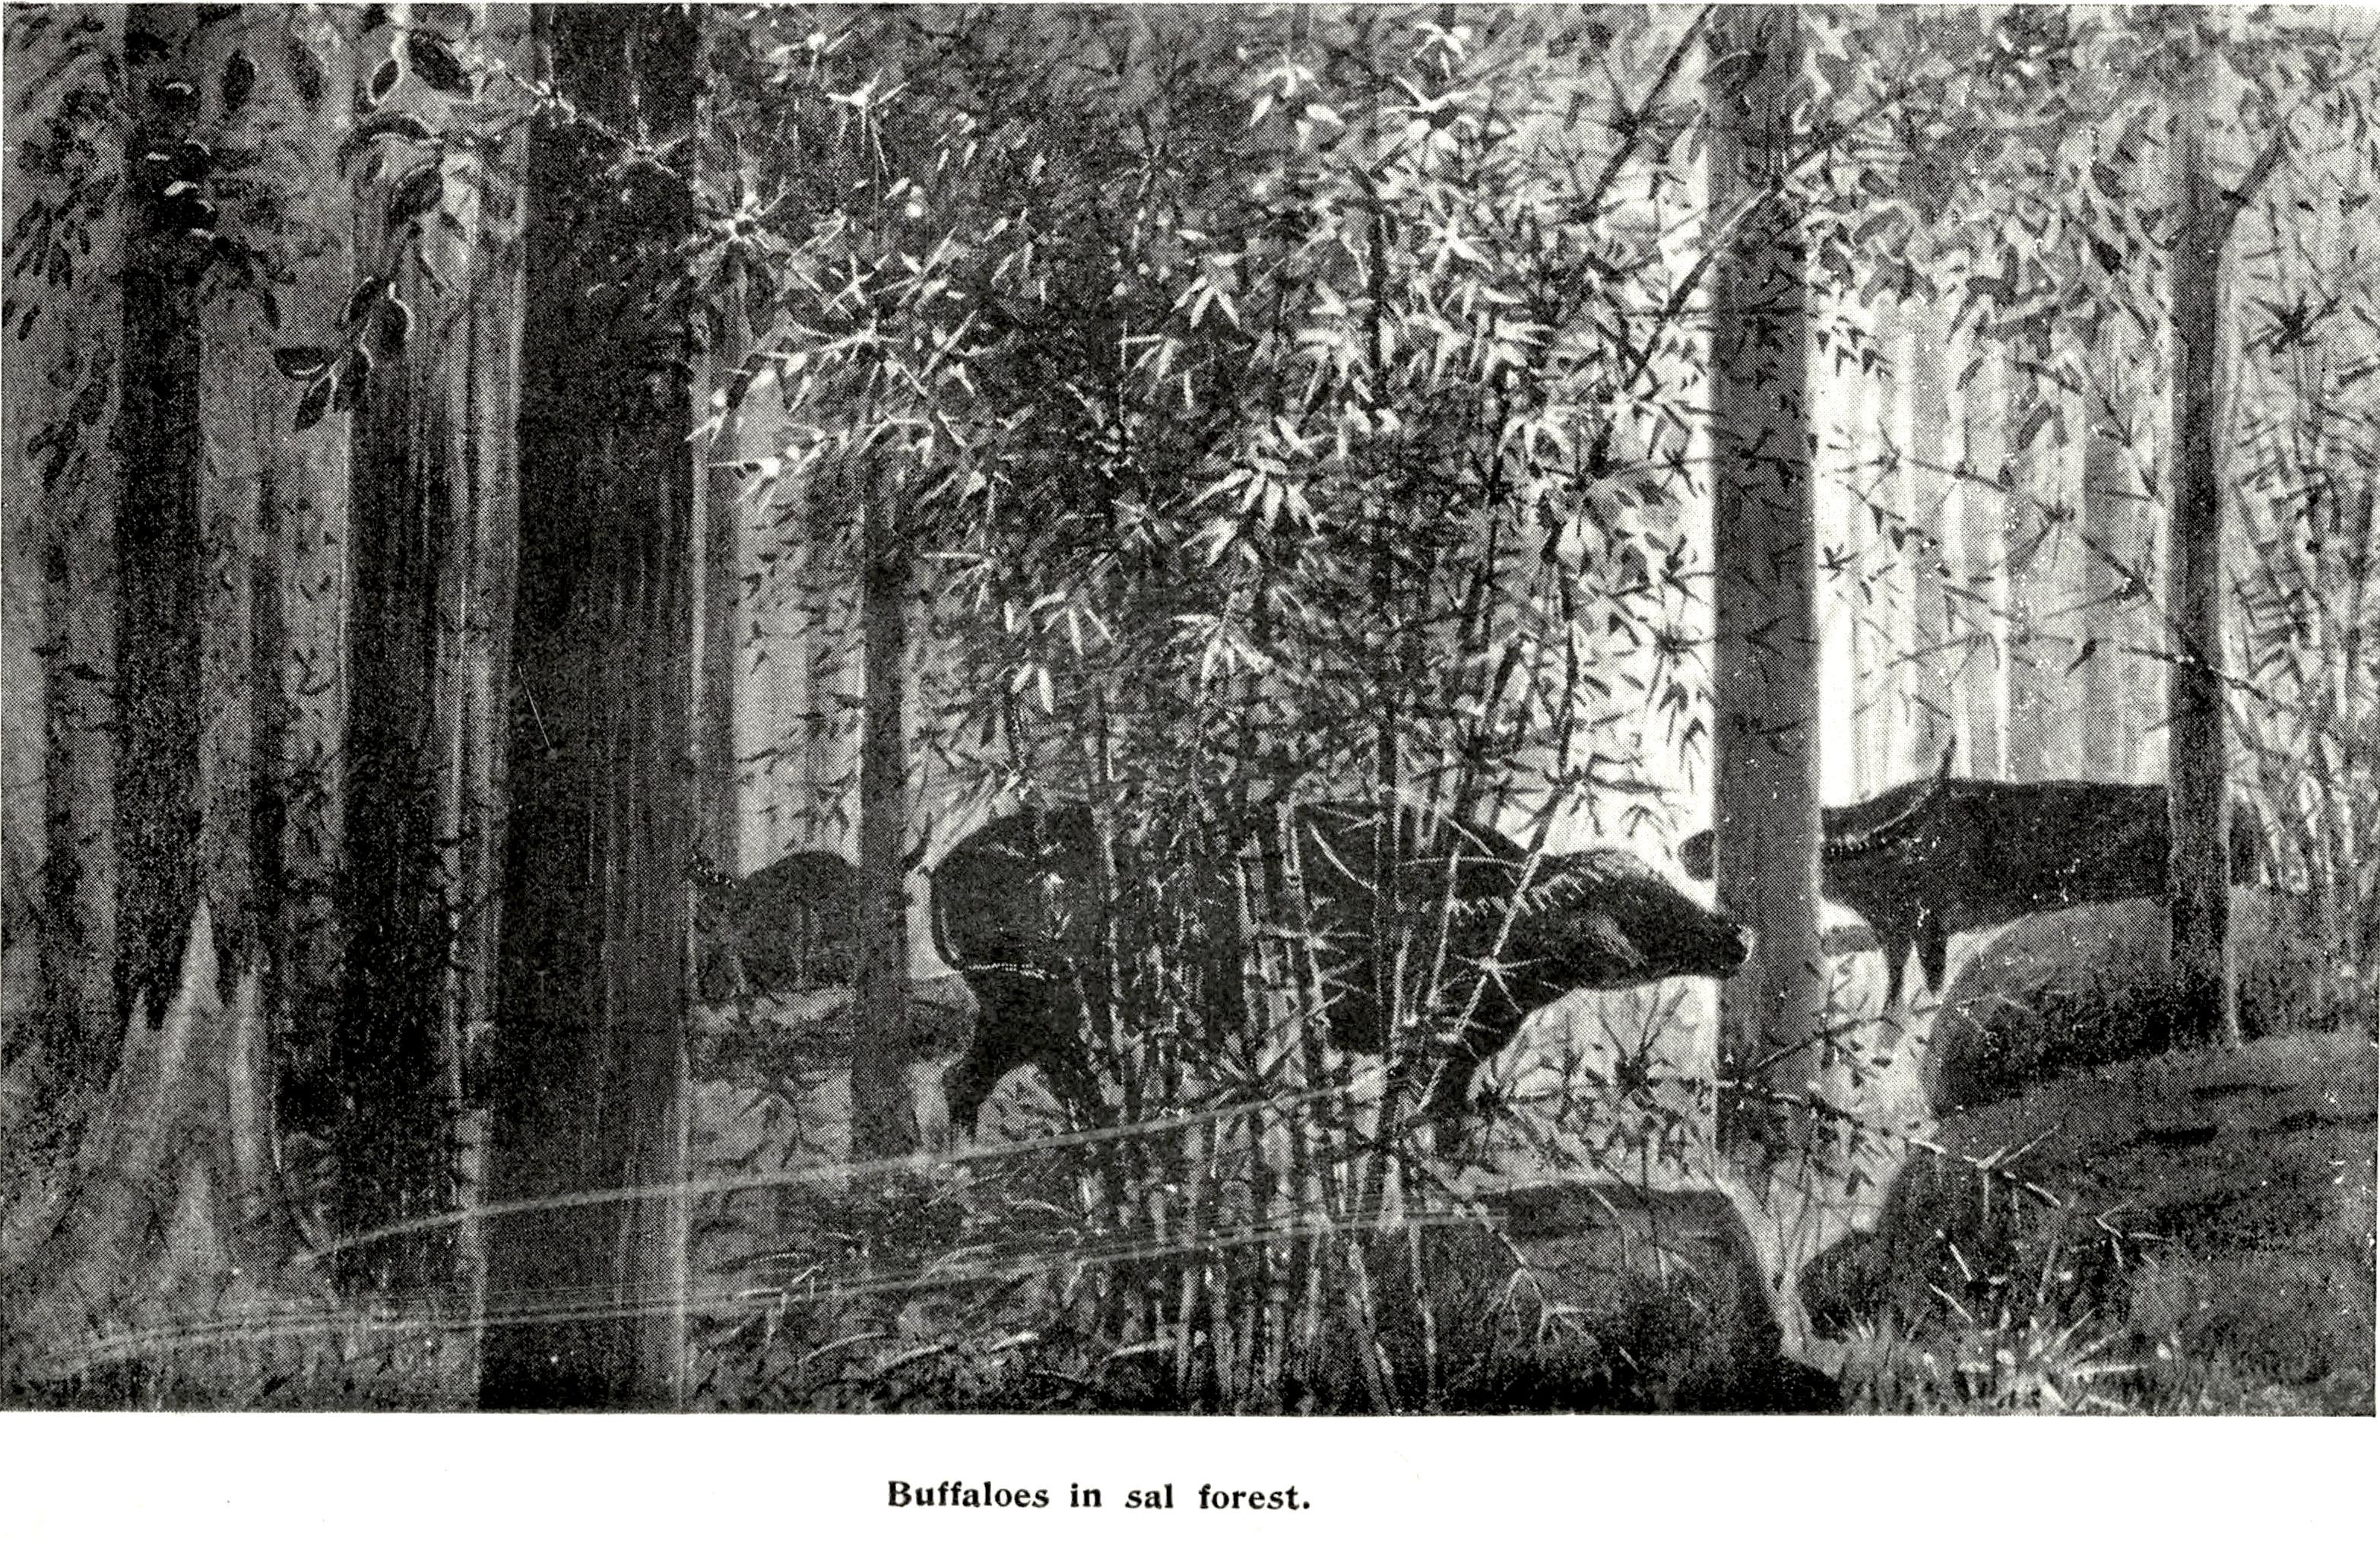 The British officer Captain Glasfurd authored three books on his hunting experiences in Central India at the turn of the 20th century. He used to hunt wild buffaloes in the Bastar forests and often sketched what he saw, such as this herd in a sal forest. Sketch: A.I.R Glasfurd, (Leaves from an Indian Jungle, 1903)  Central Indian wild buffaloes are one of the rarest, largest, and hardest to spot wild bovines of the world. Unlike their Assamese brethren that are believed to have suffered some genetic dilution, these buffaloes of the sal forests of Central India are believed to be world's last genetically pure population of wild buffaloes. Cover Photo: Arindam Bhattacharya